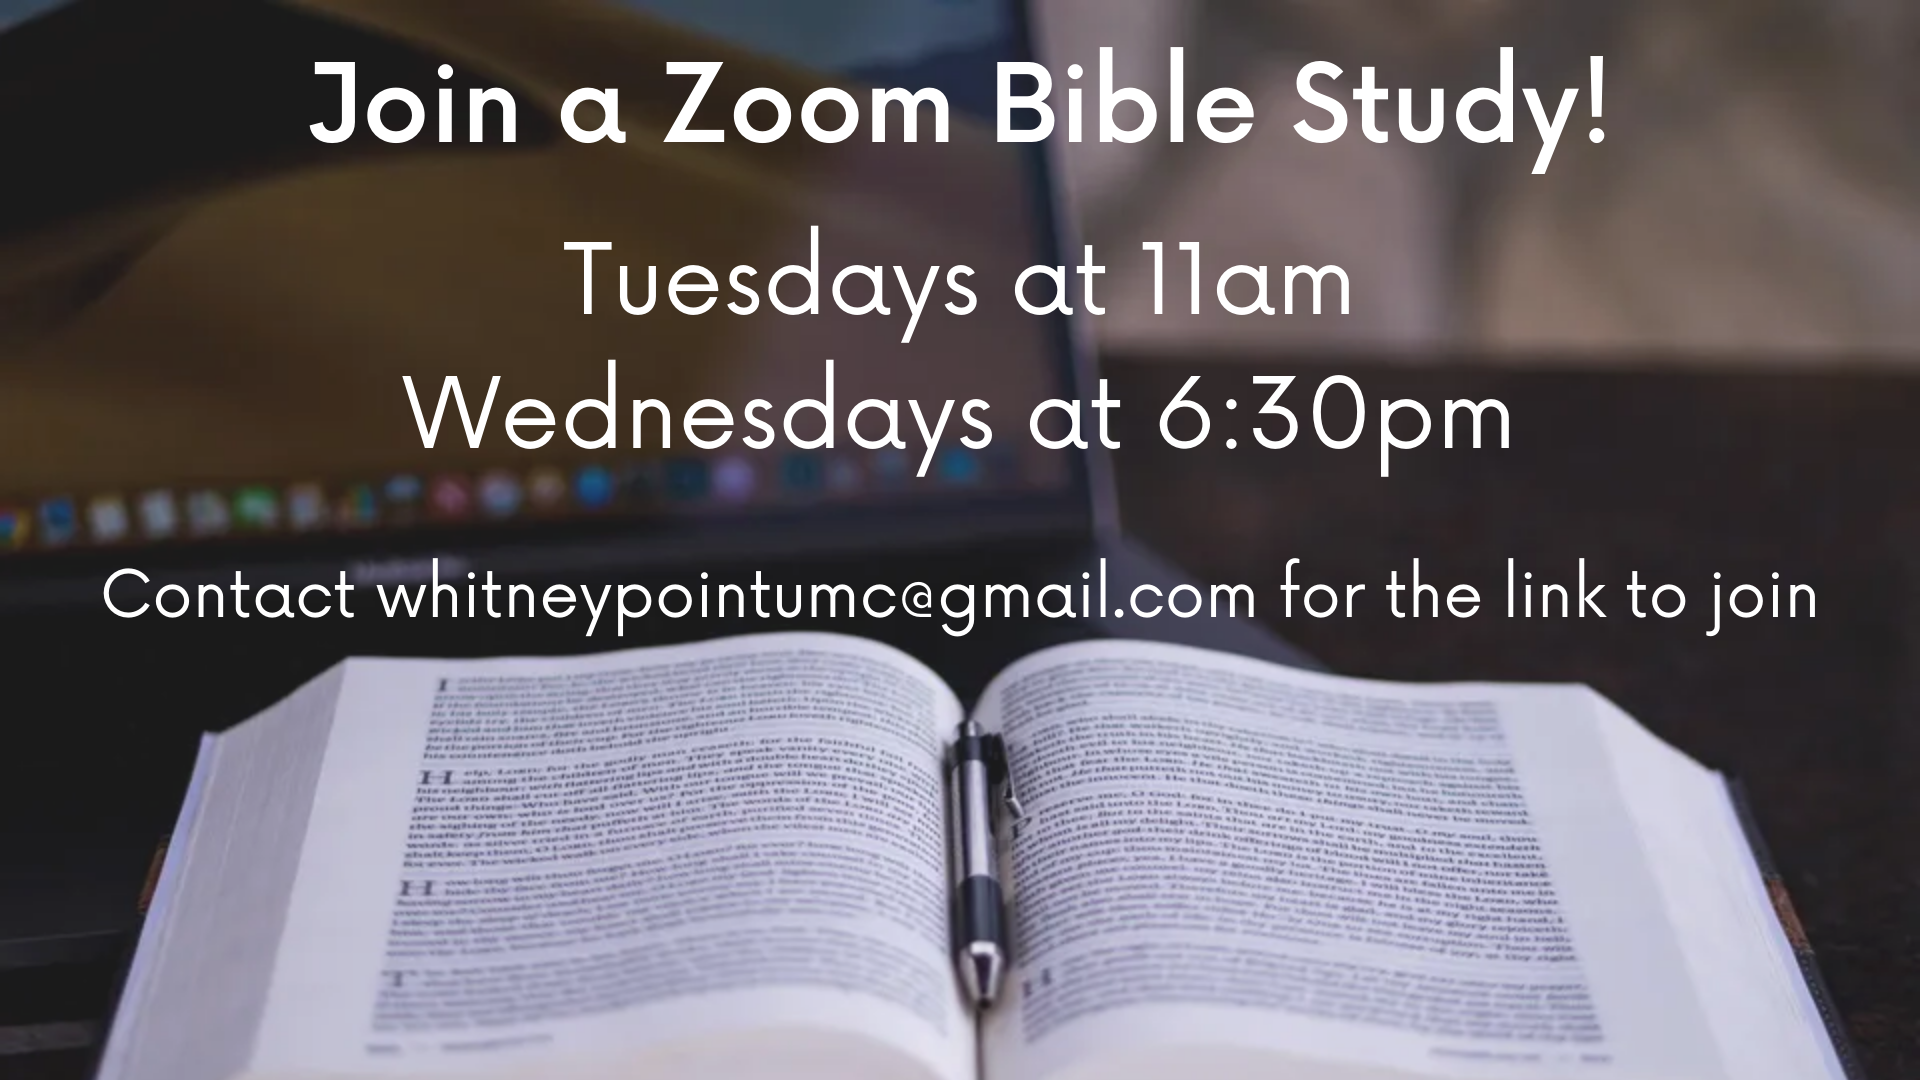 Join a Zoom Bible Study